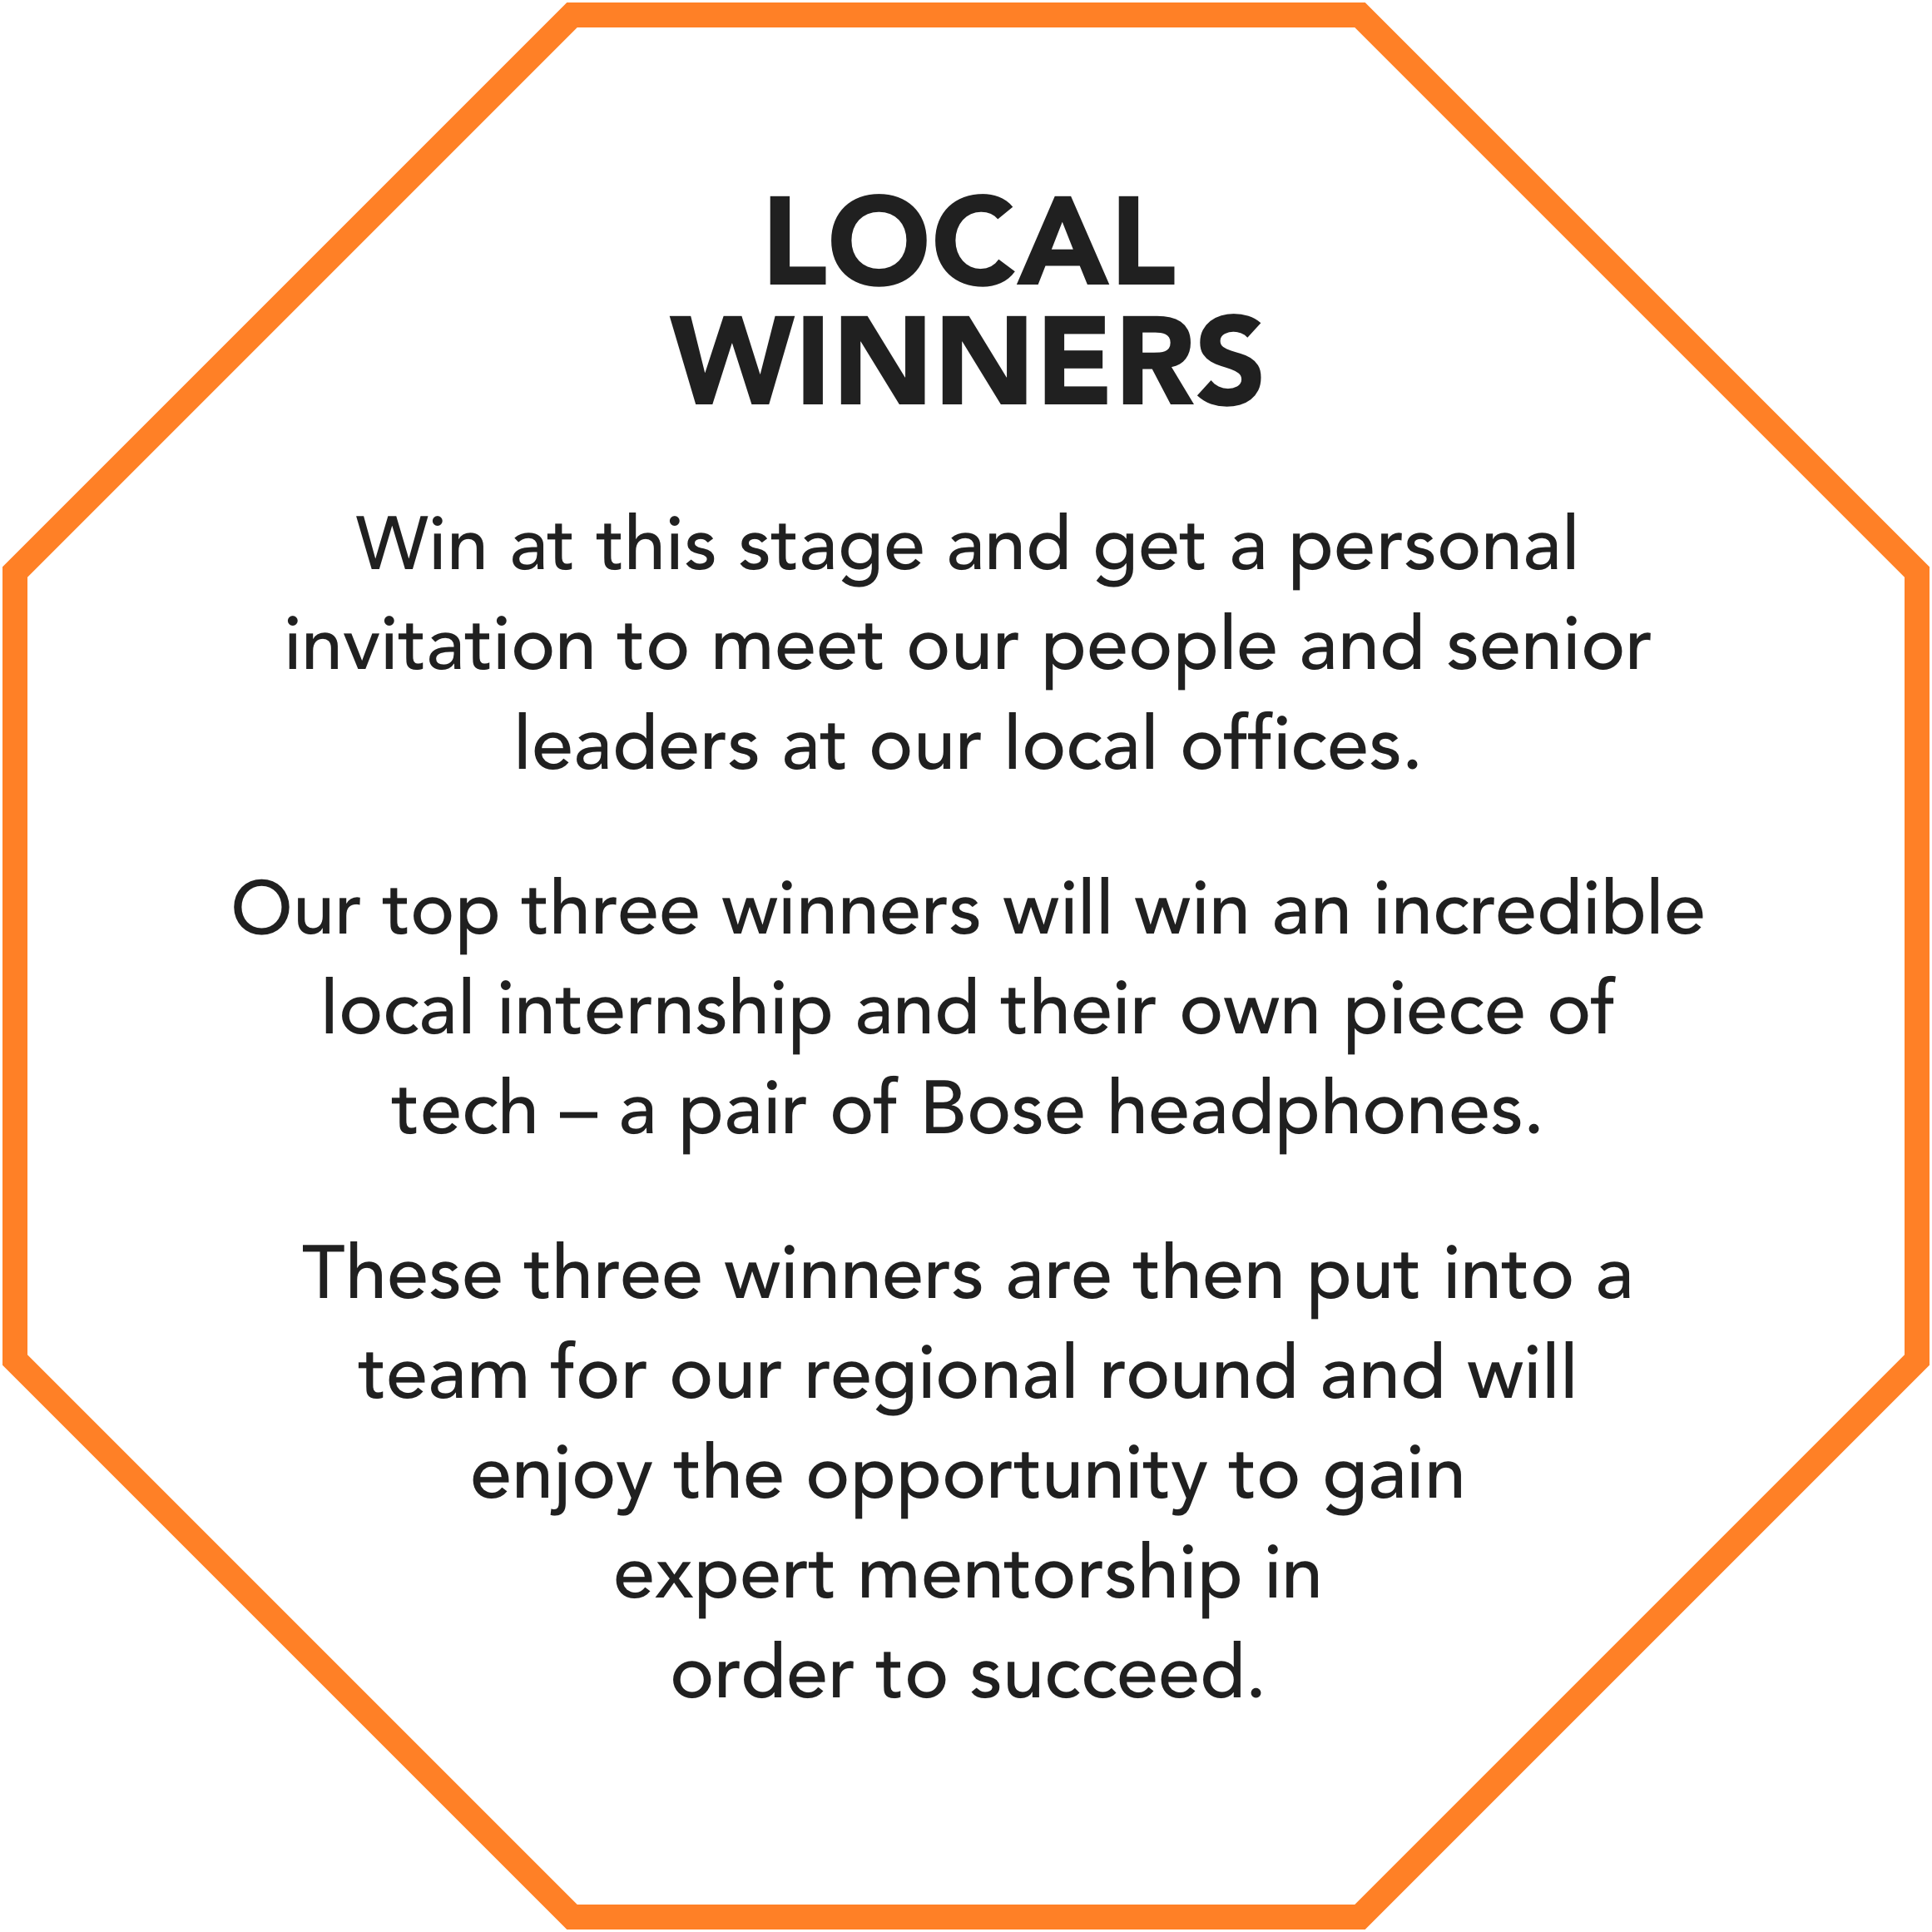 Local winners image representing prizes available